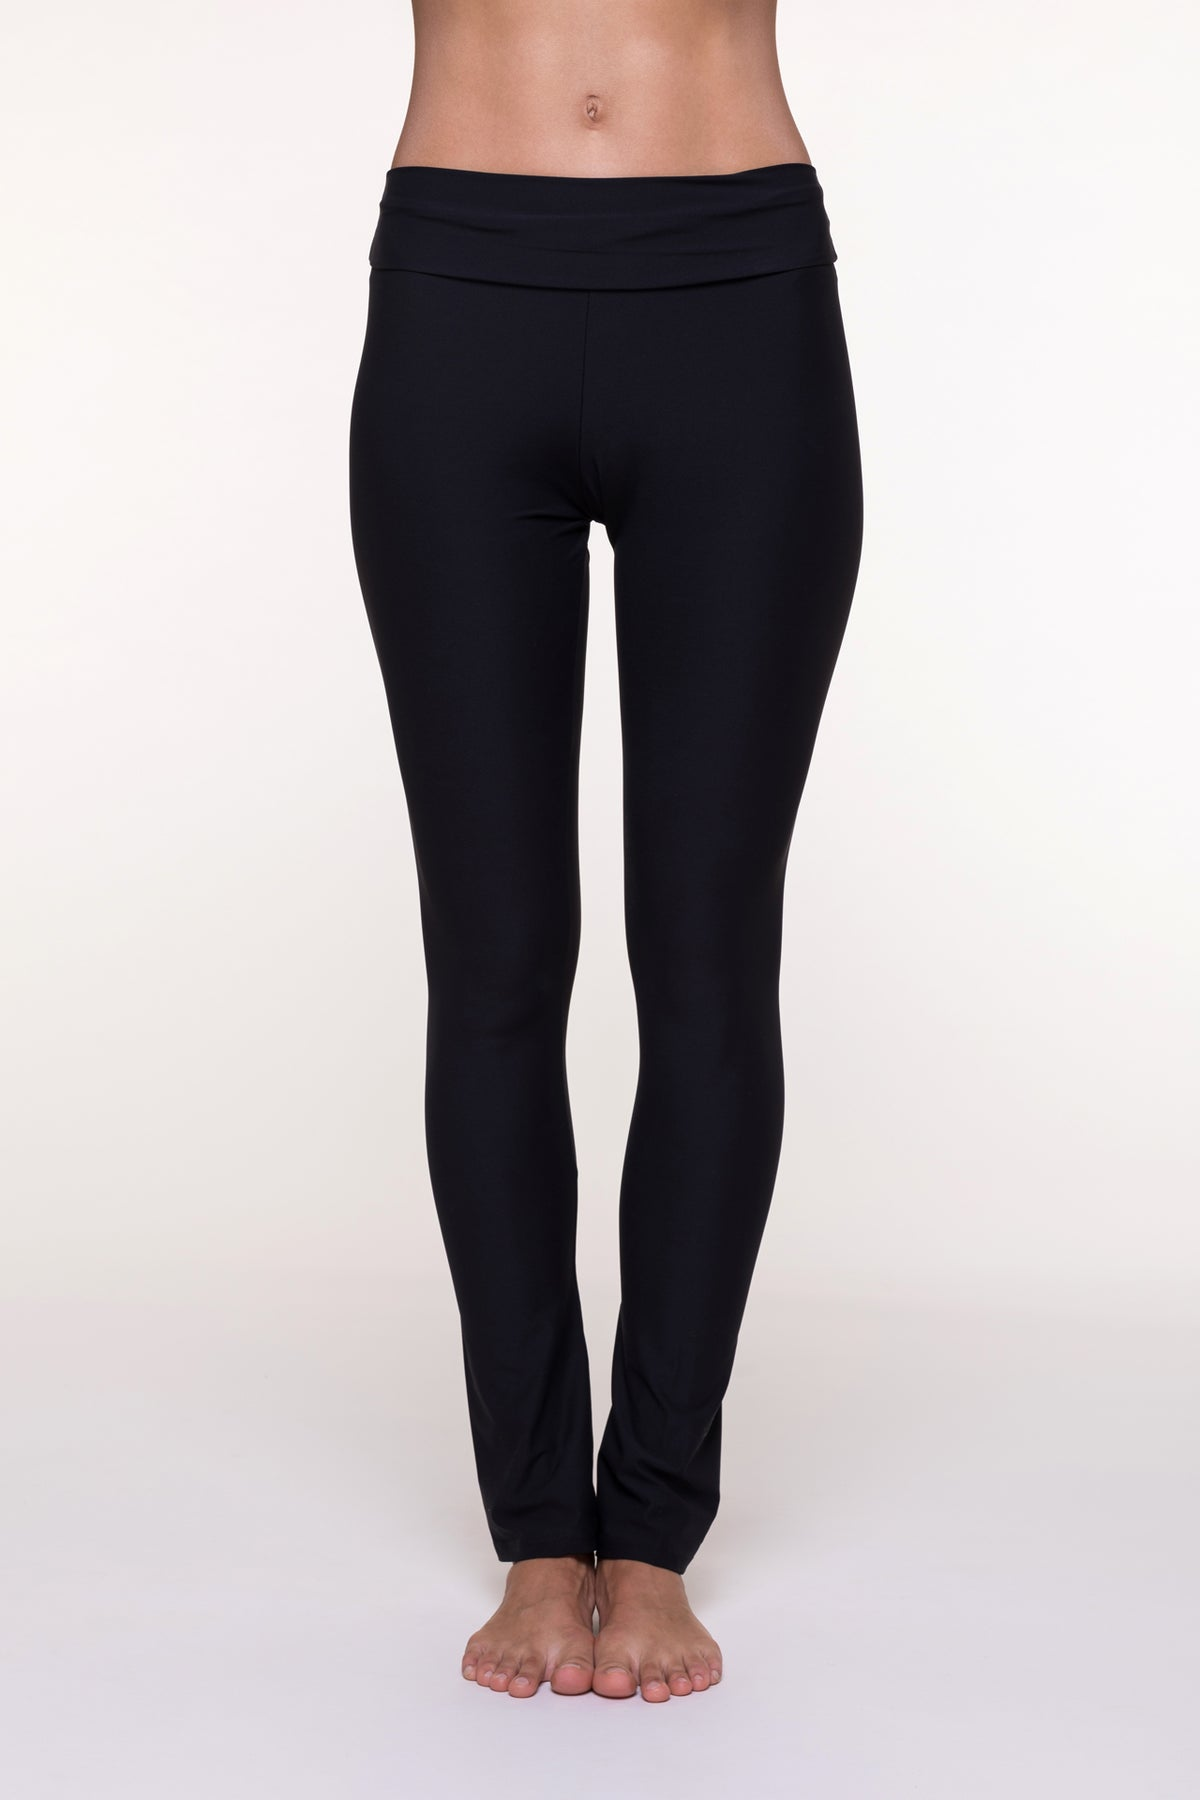 Legging Akshara Black